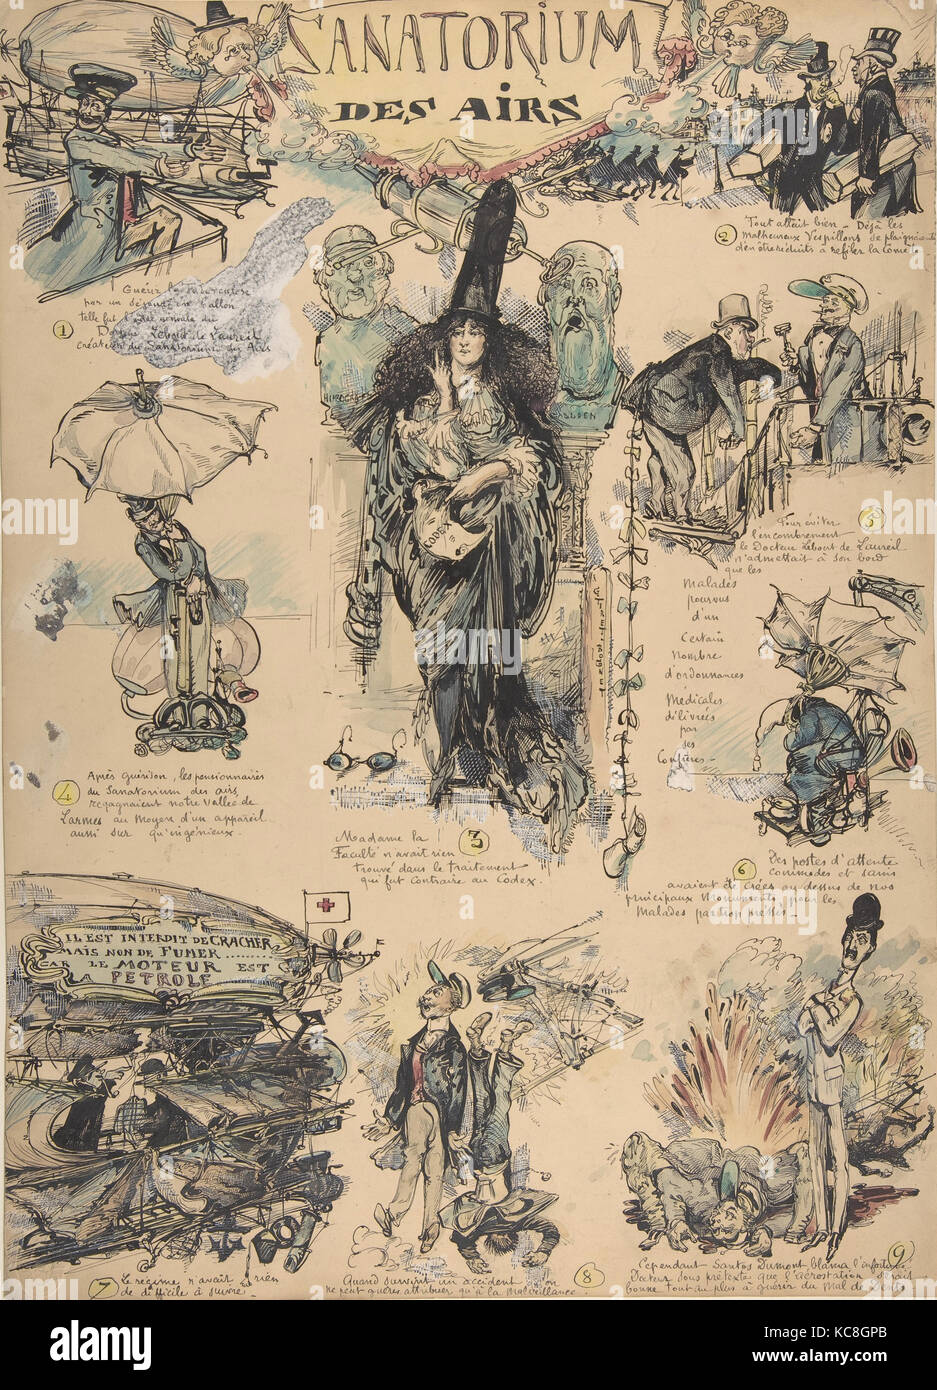 Sanitorium des Airs, n.d., Pen and black ink, brush and colored wash, 18 3/4 x 13 1/2 in. (47.6 x 34.3 cm), Drawings, - Stock Image